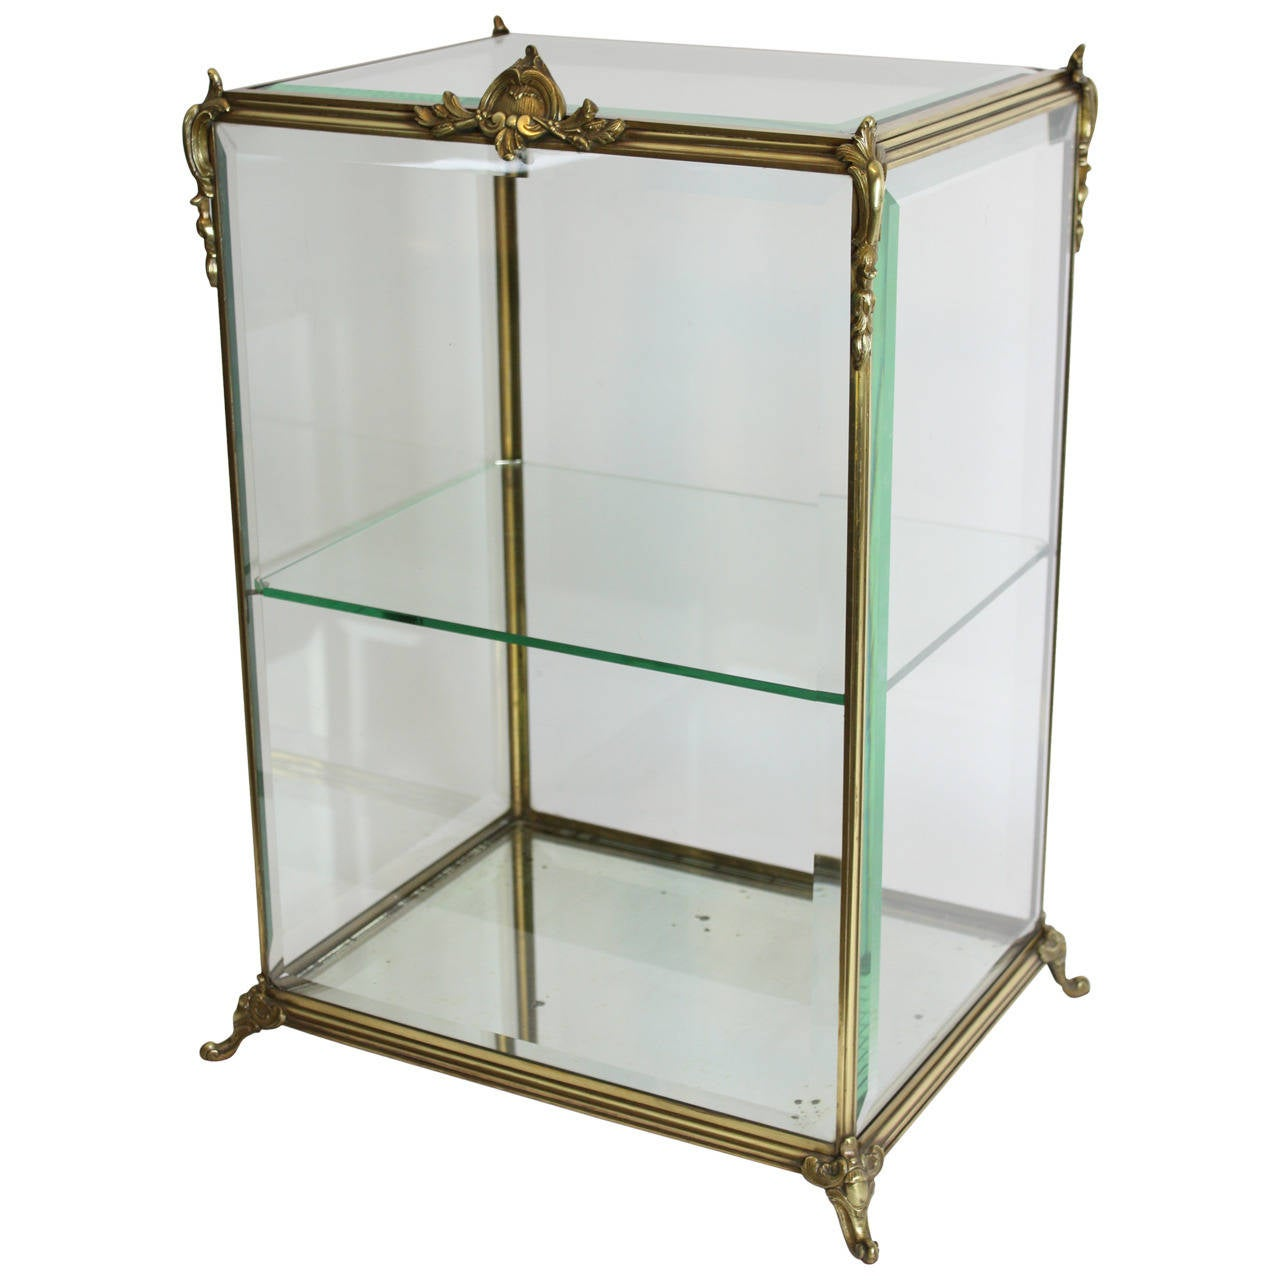 Small Louis XV Style Brass and Glass Jewerly Showcase